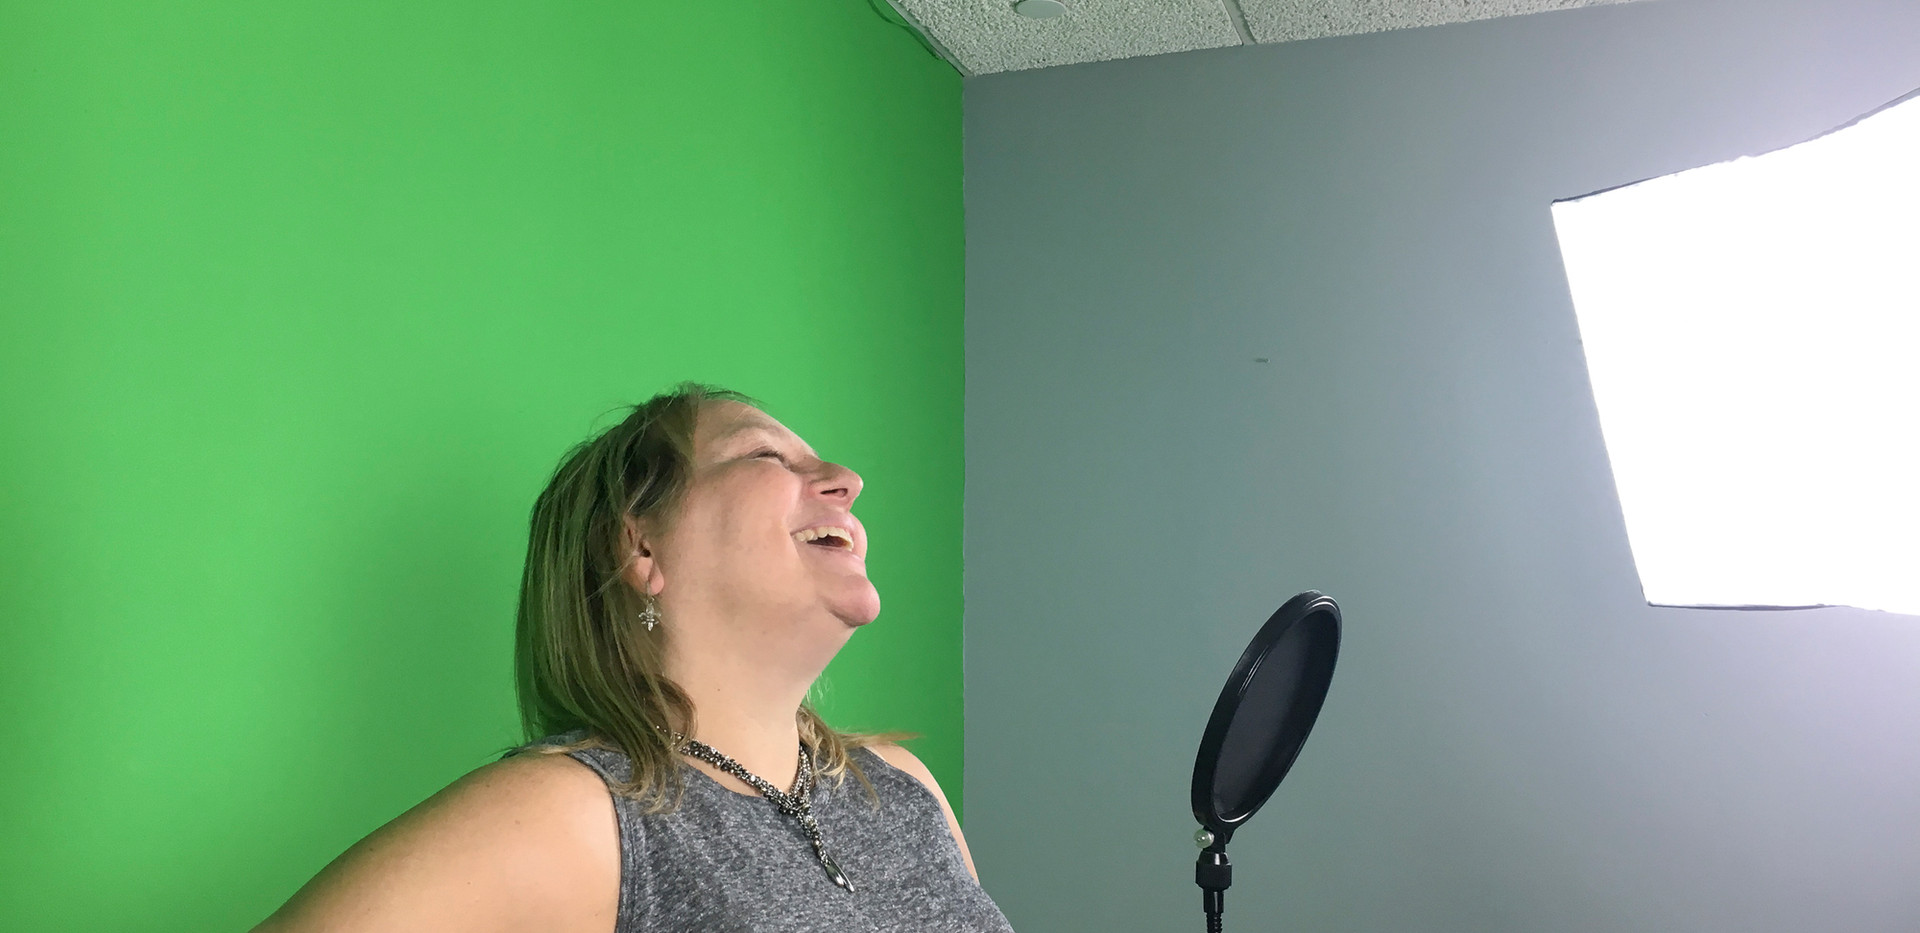 Green Screen Room20.jpg